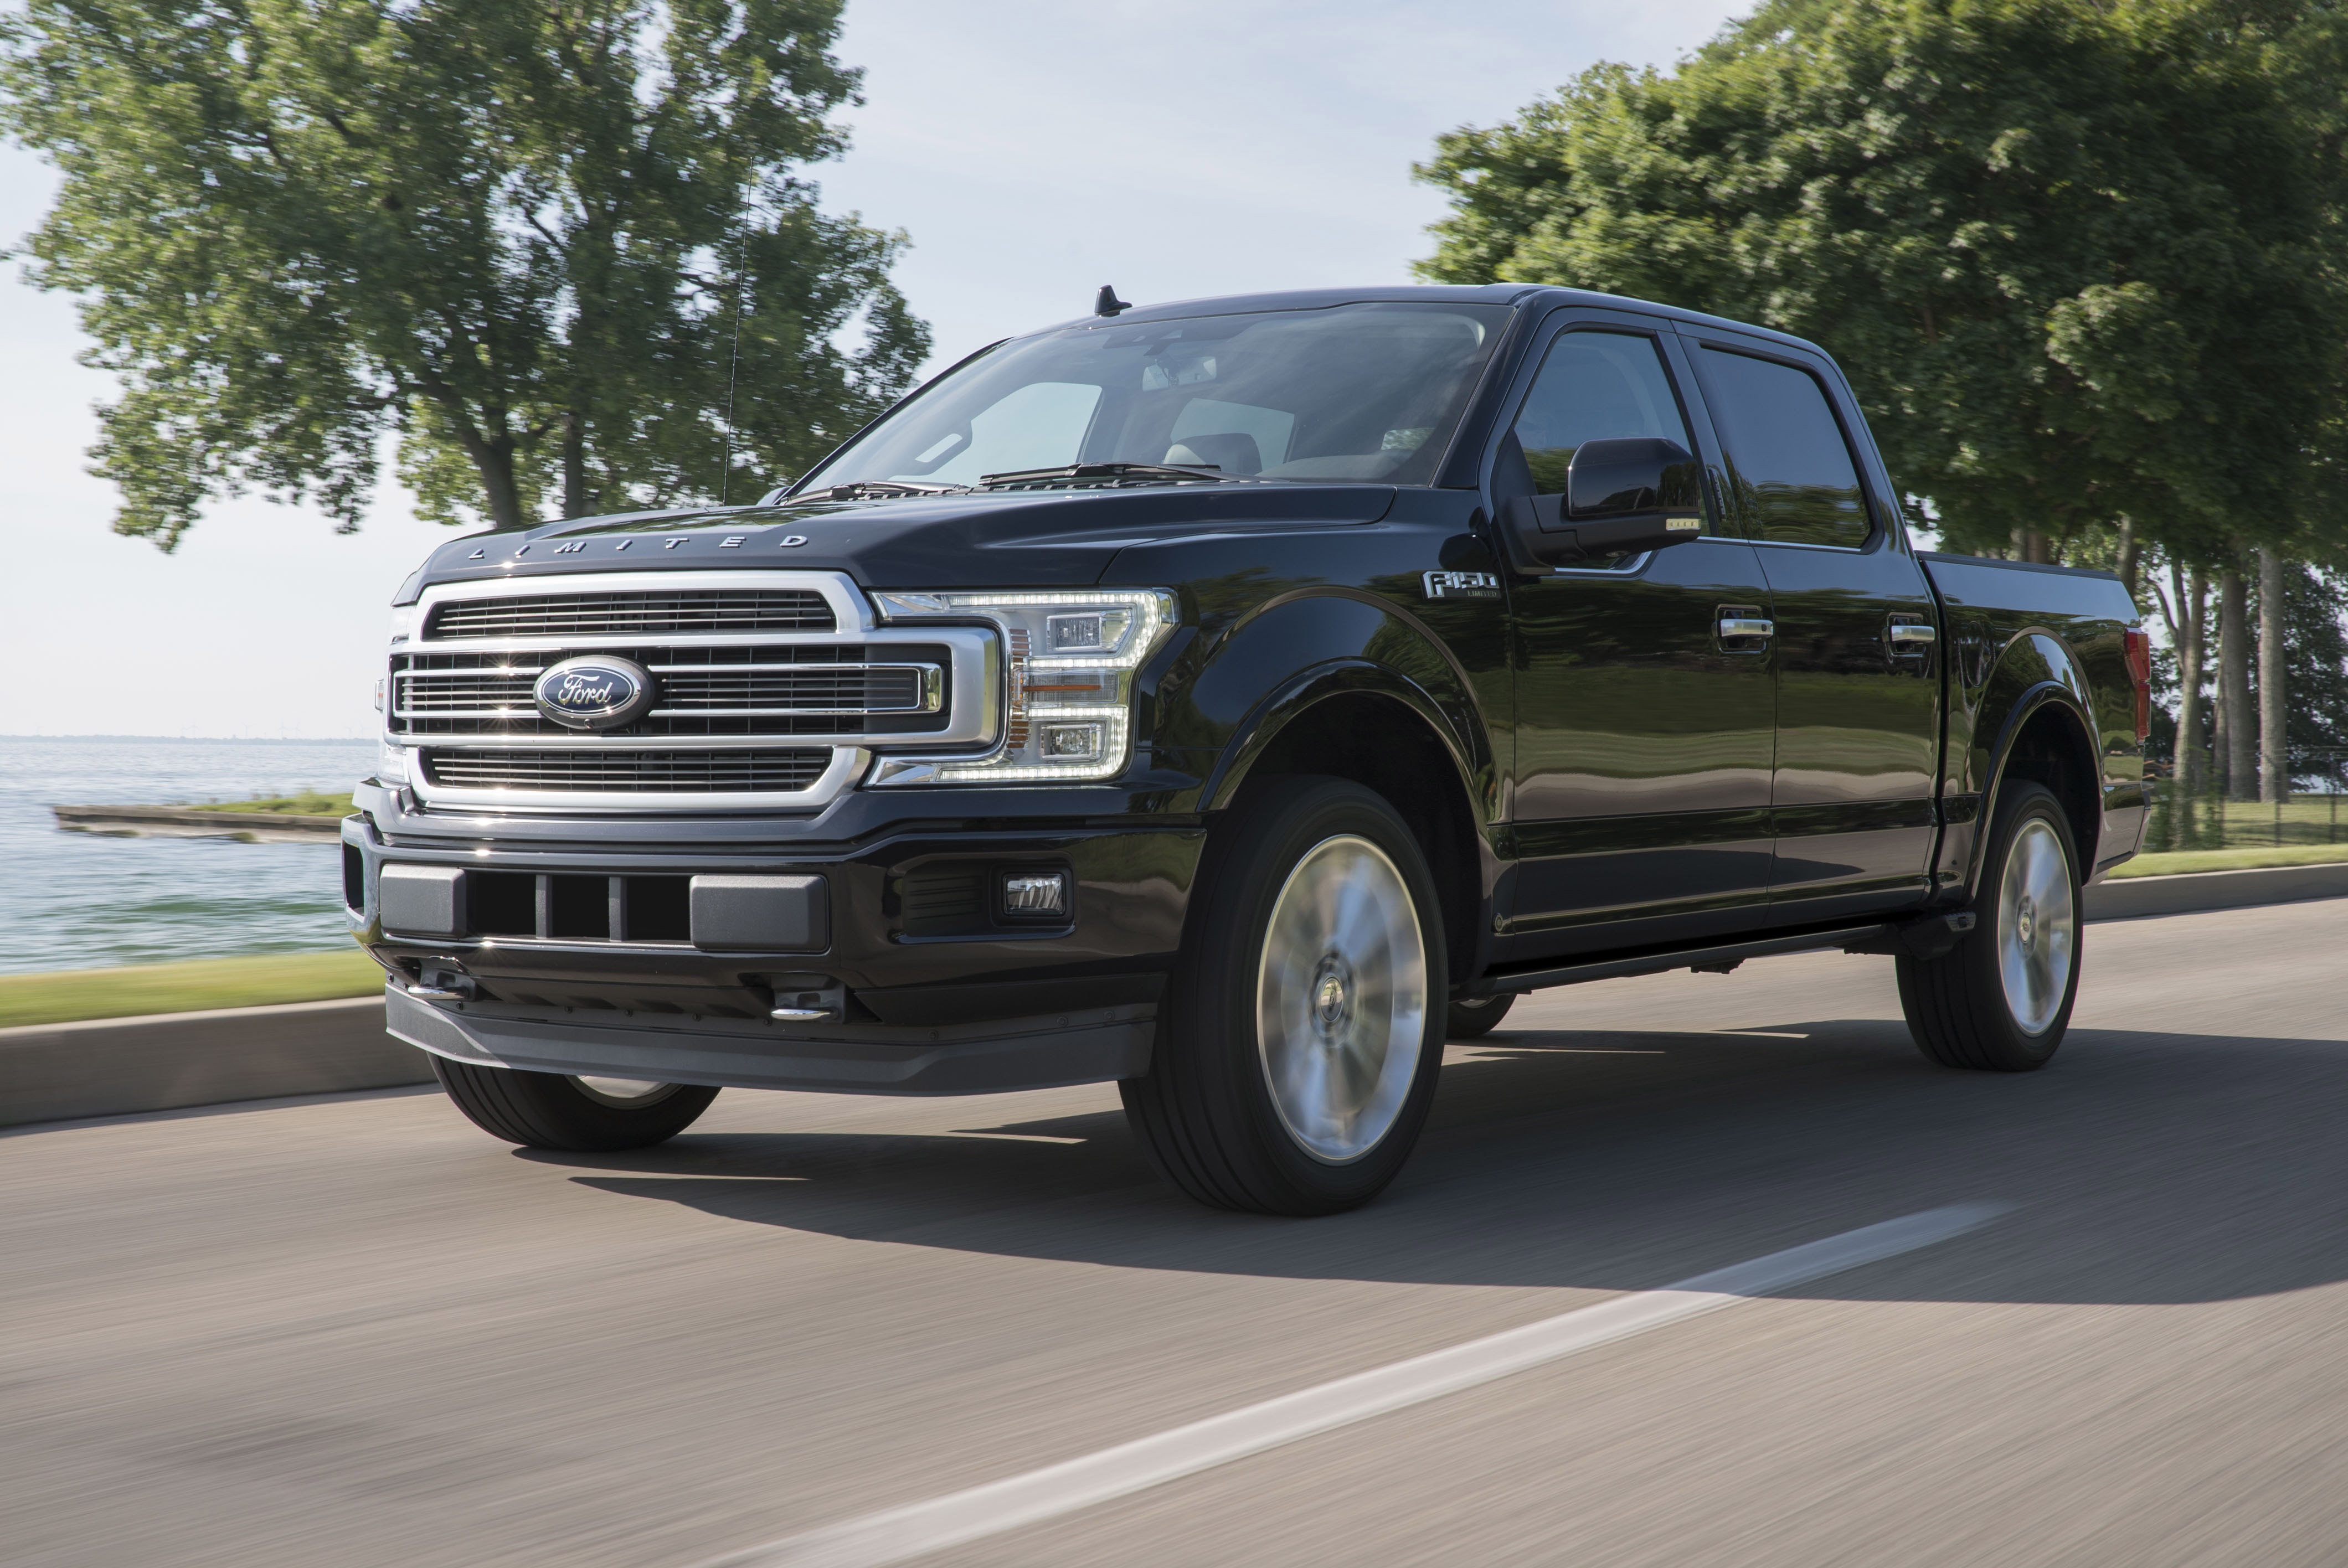 Mountain Wheels: Ford's F-150 family aims for total domination